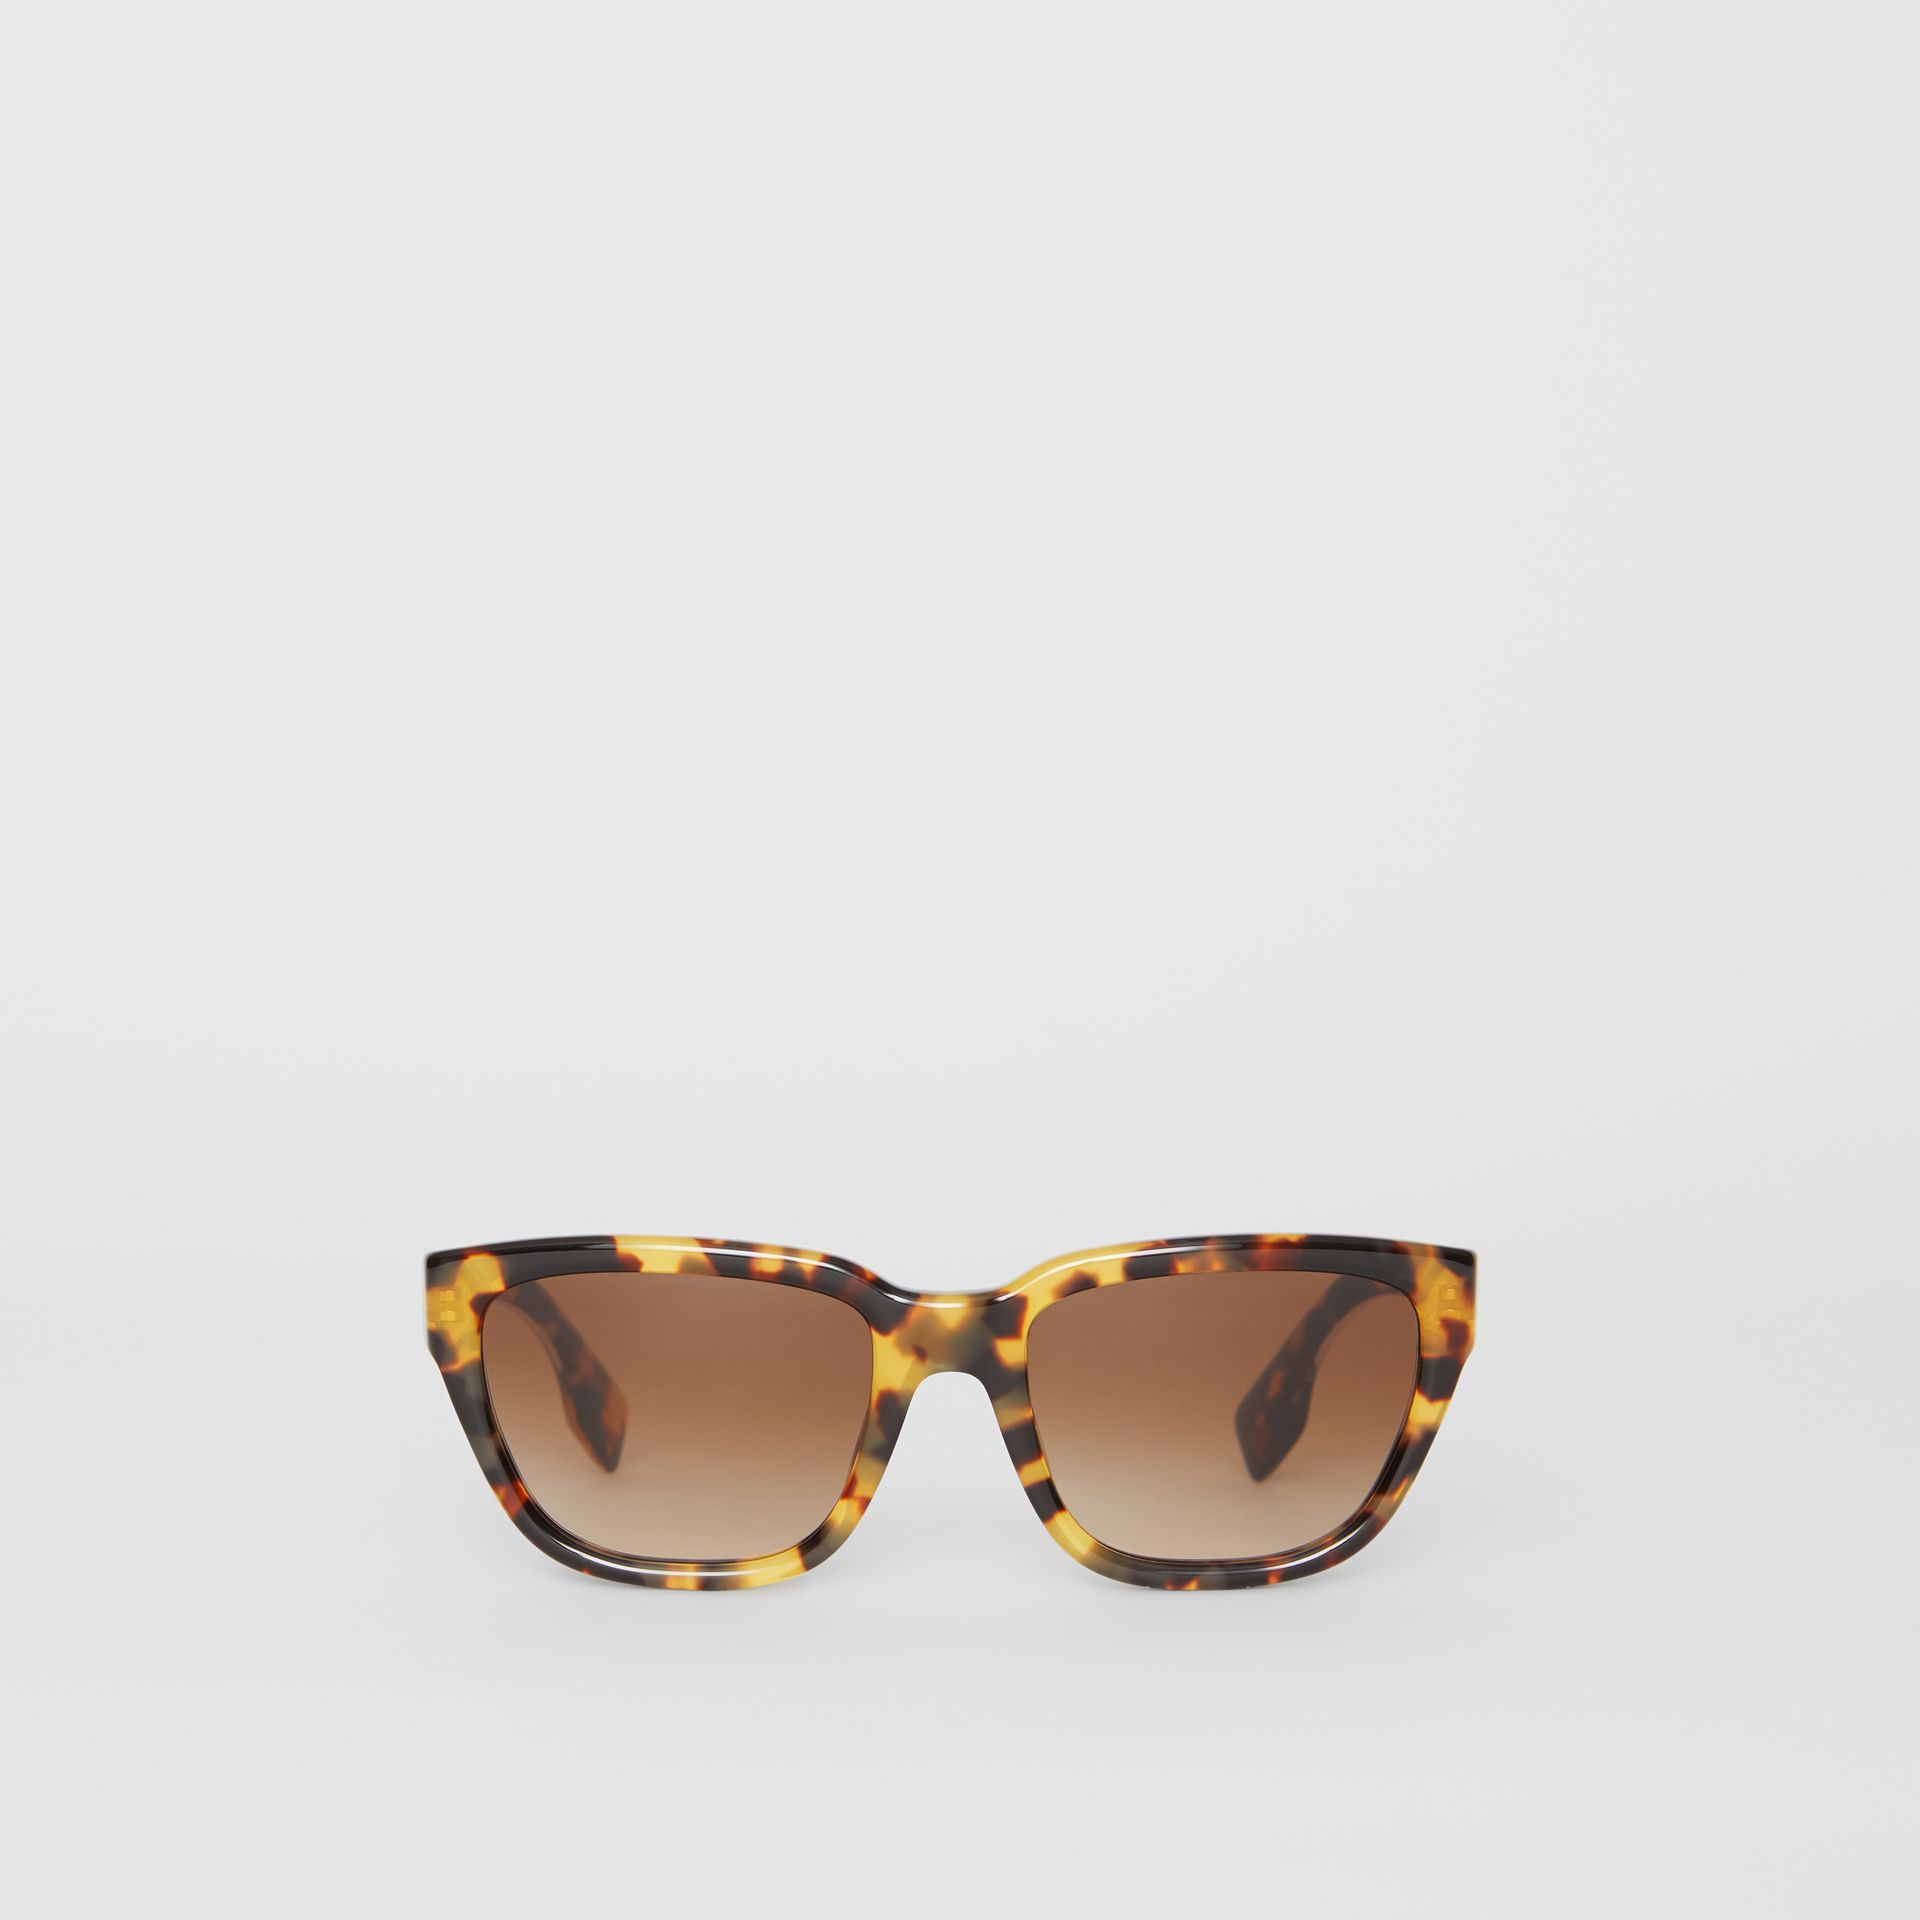 Square Frame Sunglasses in Tortoiseshell - Women | Burberry Hong Kong S.A.R - gallery image 0